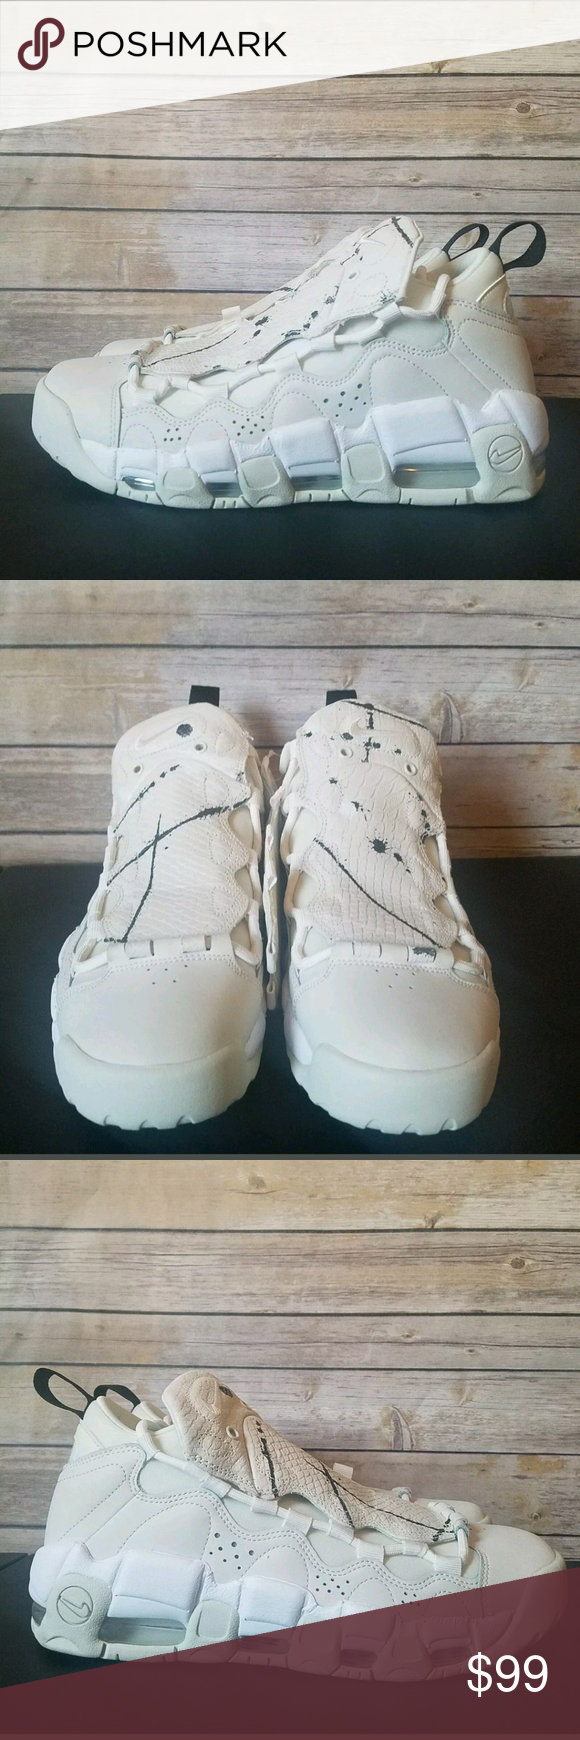 hot sale online 87533 a3350 Nike Air More Money White Sneakers Women s 10 NIKE AIR